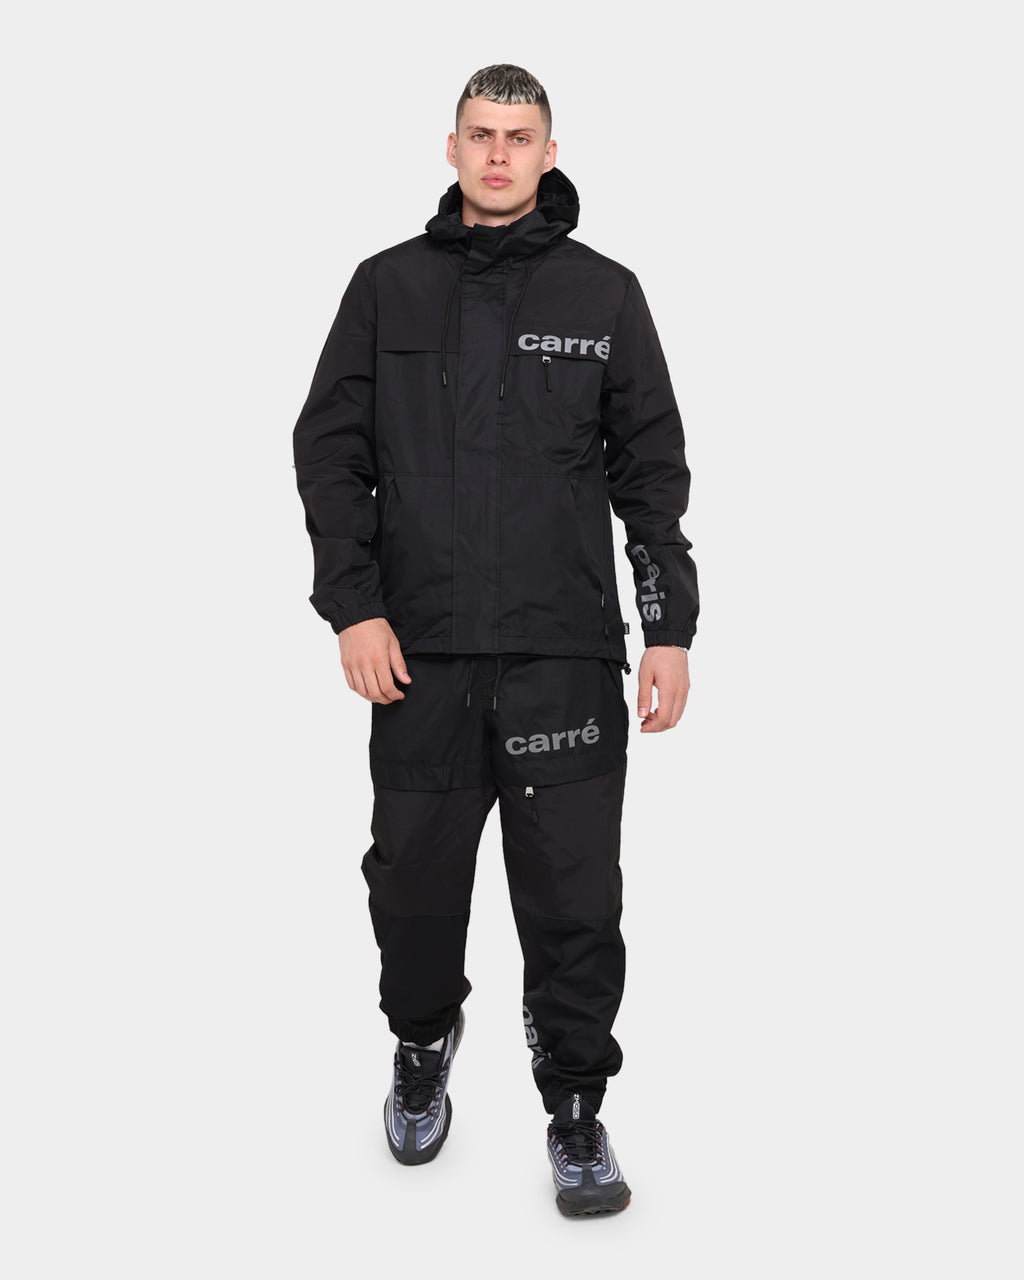 Carré Adventure Reflective Trackpant Black/Reflective